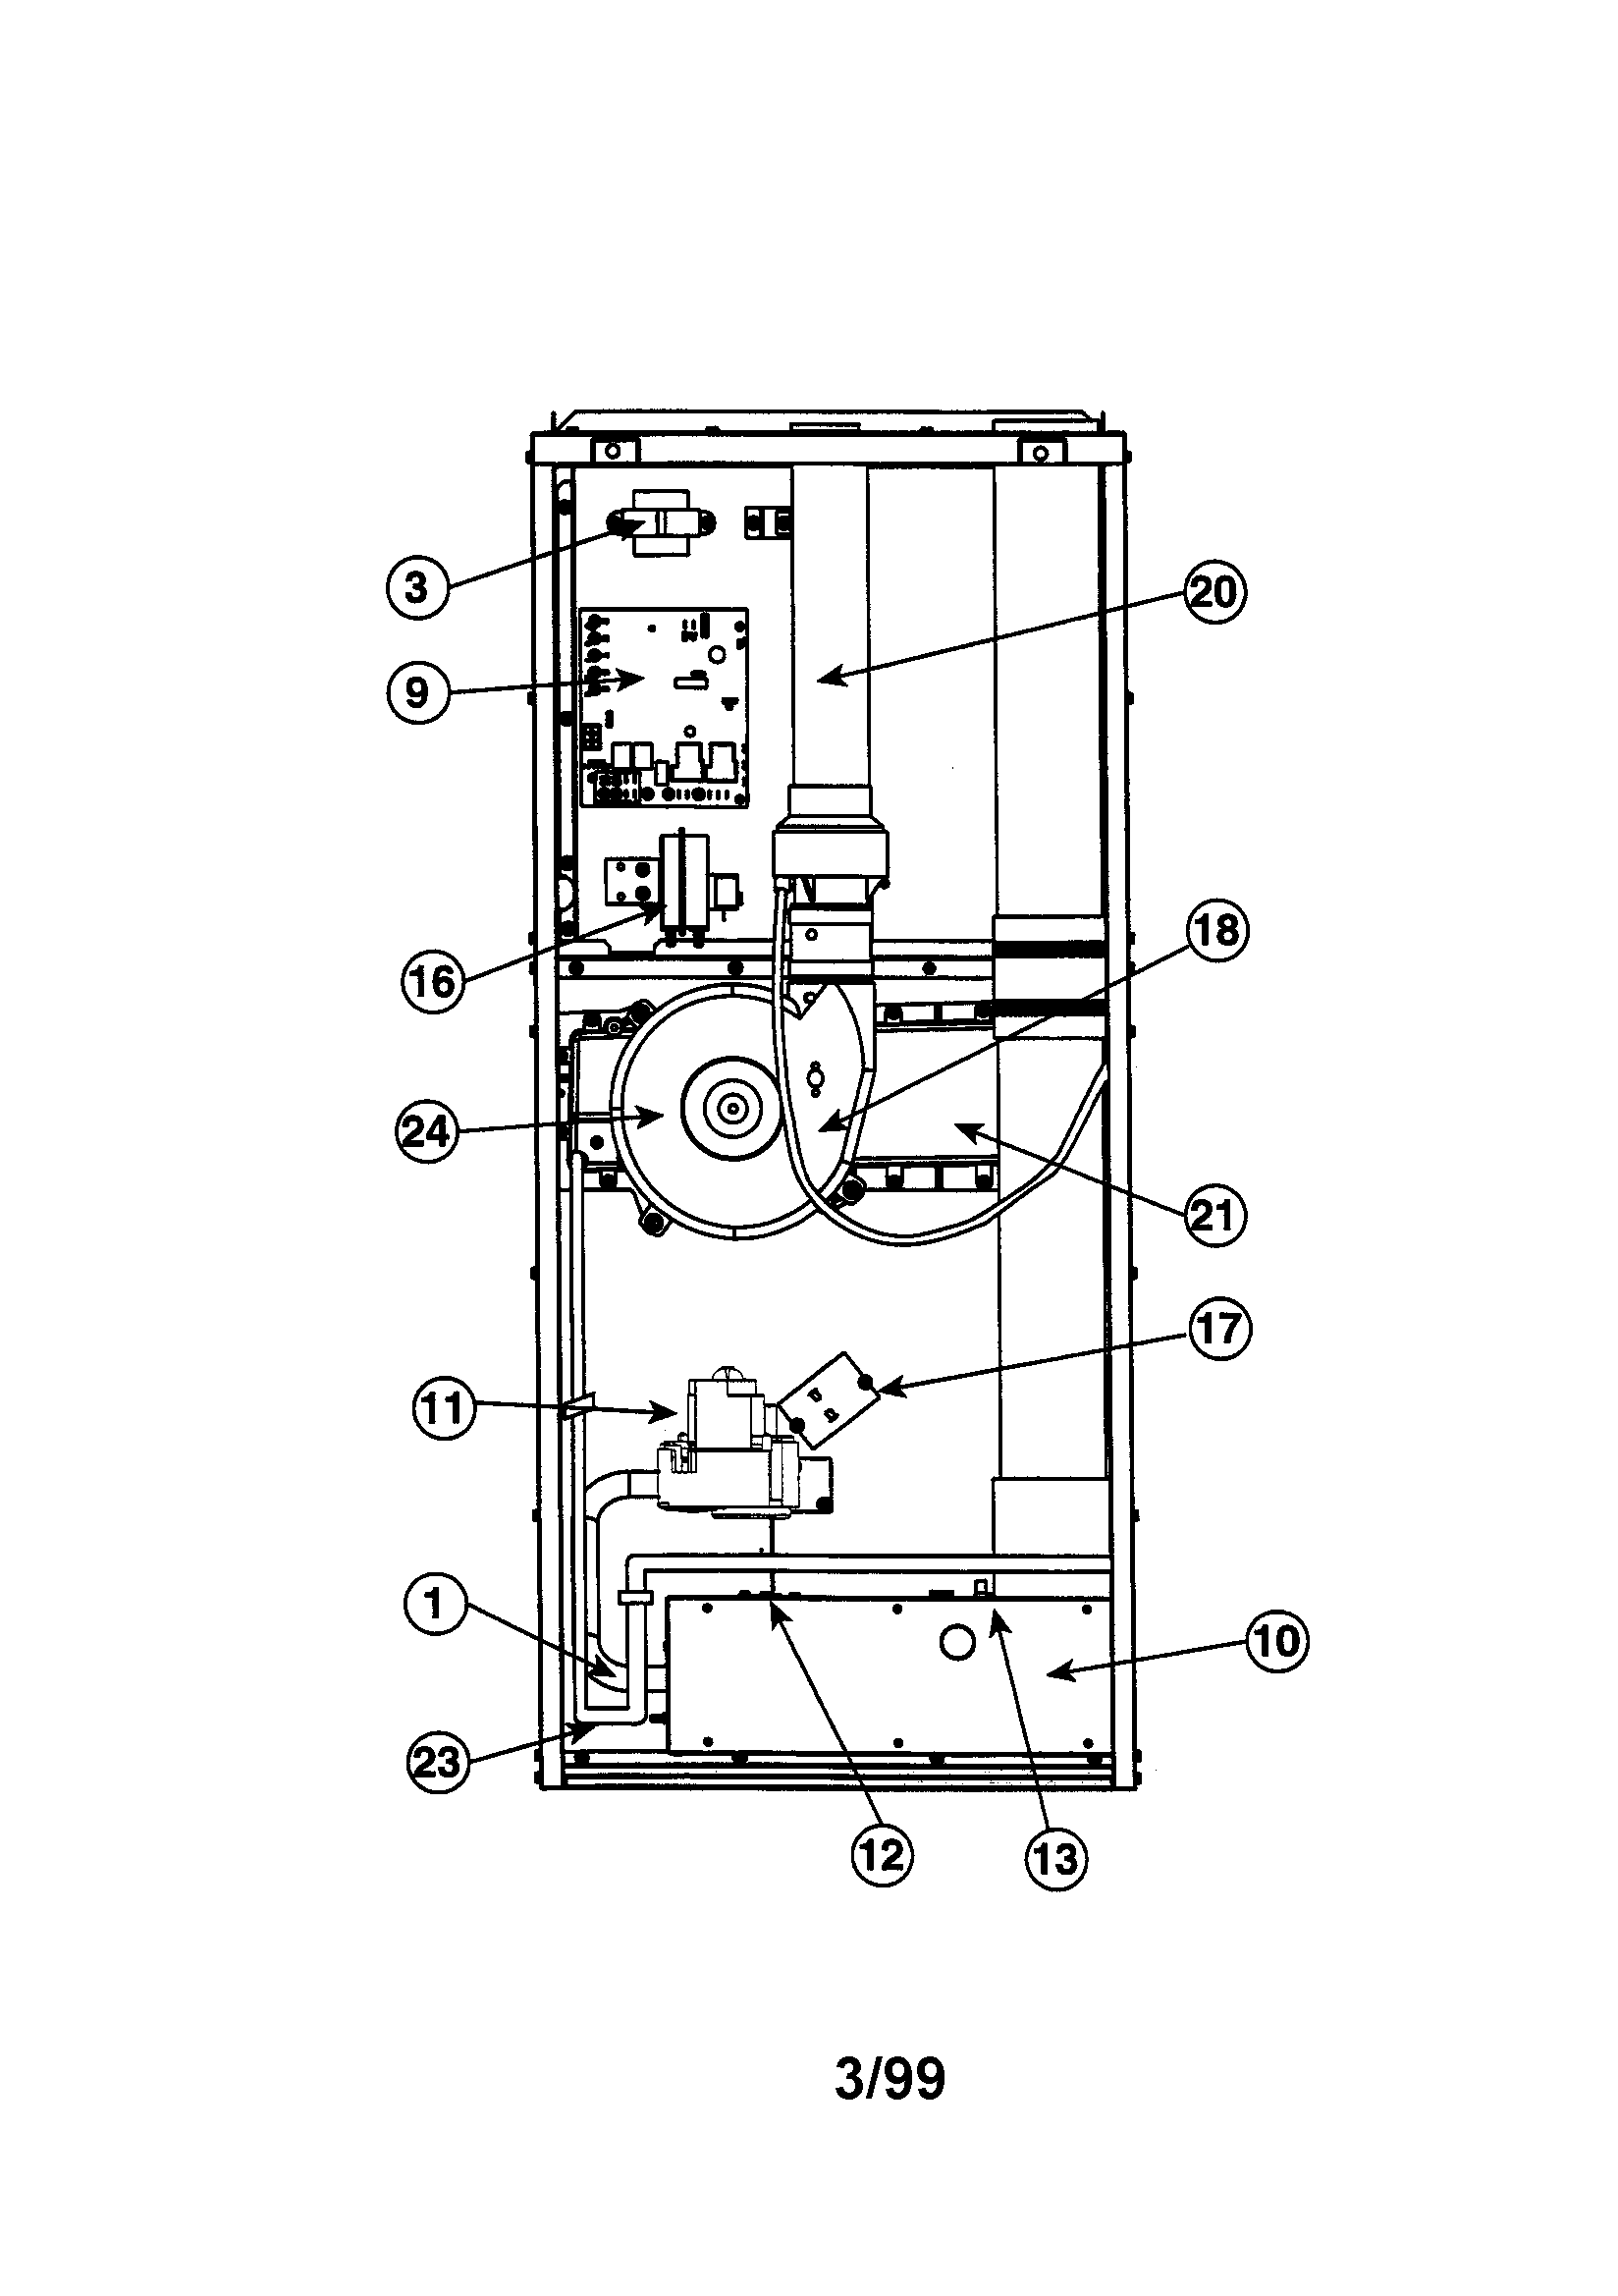 hight resolution of intertherm furnace part diagram